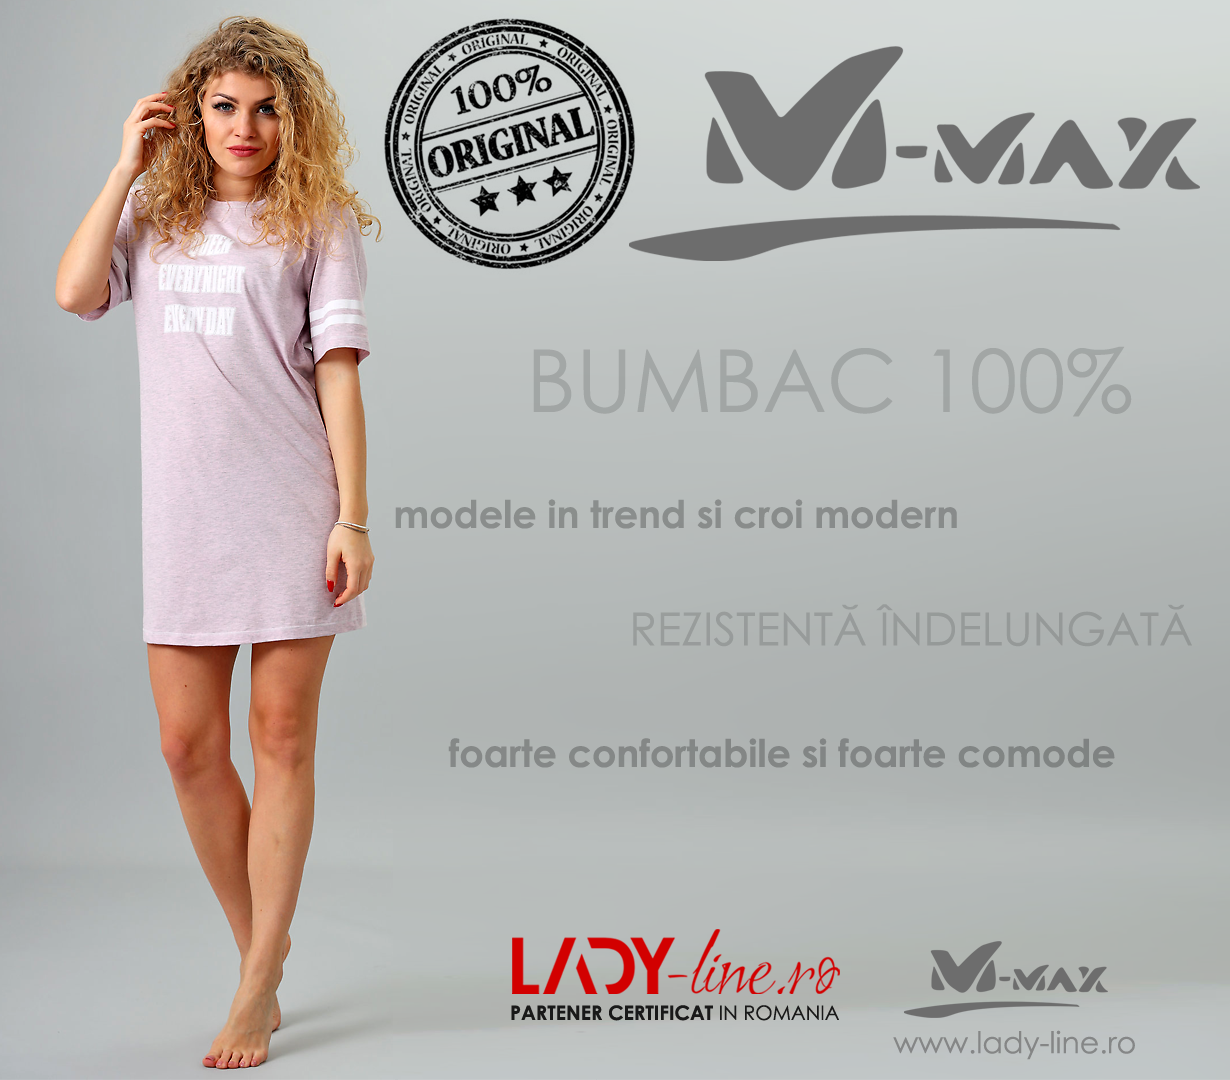 Camasa de Noapte M-Max, Bumbac 100%, 'Queen Everynight Everday'